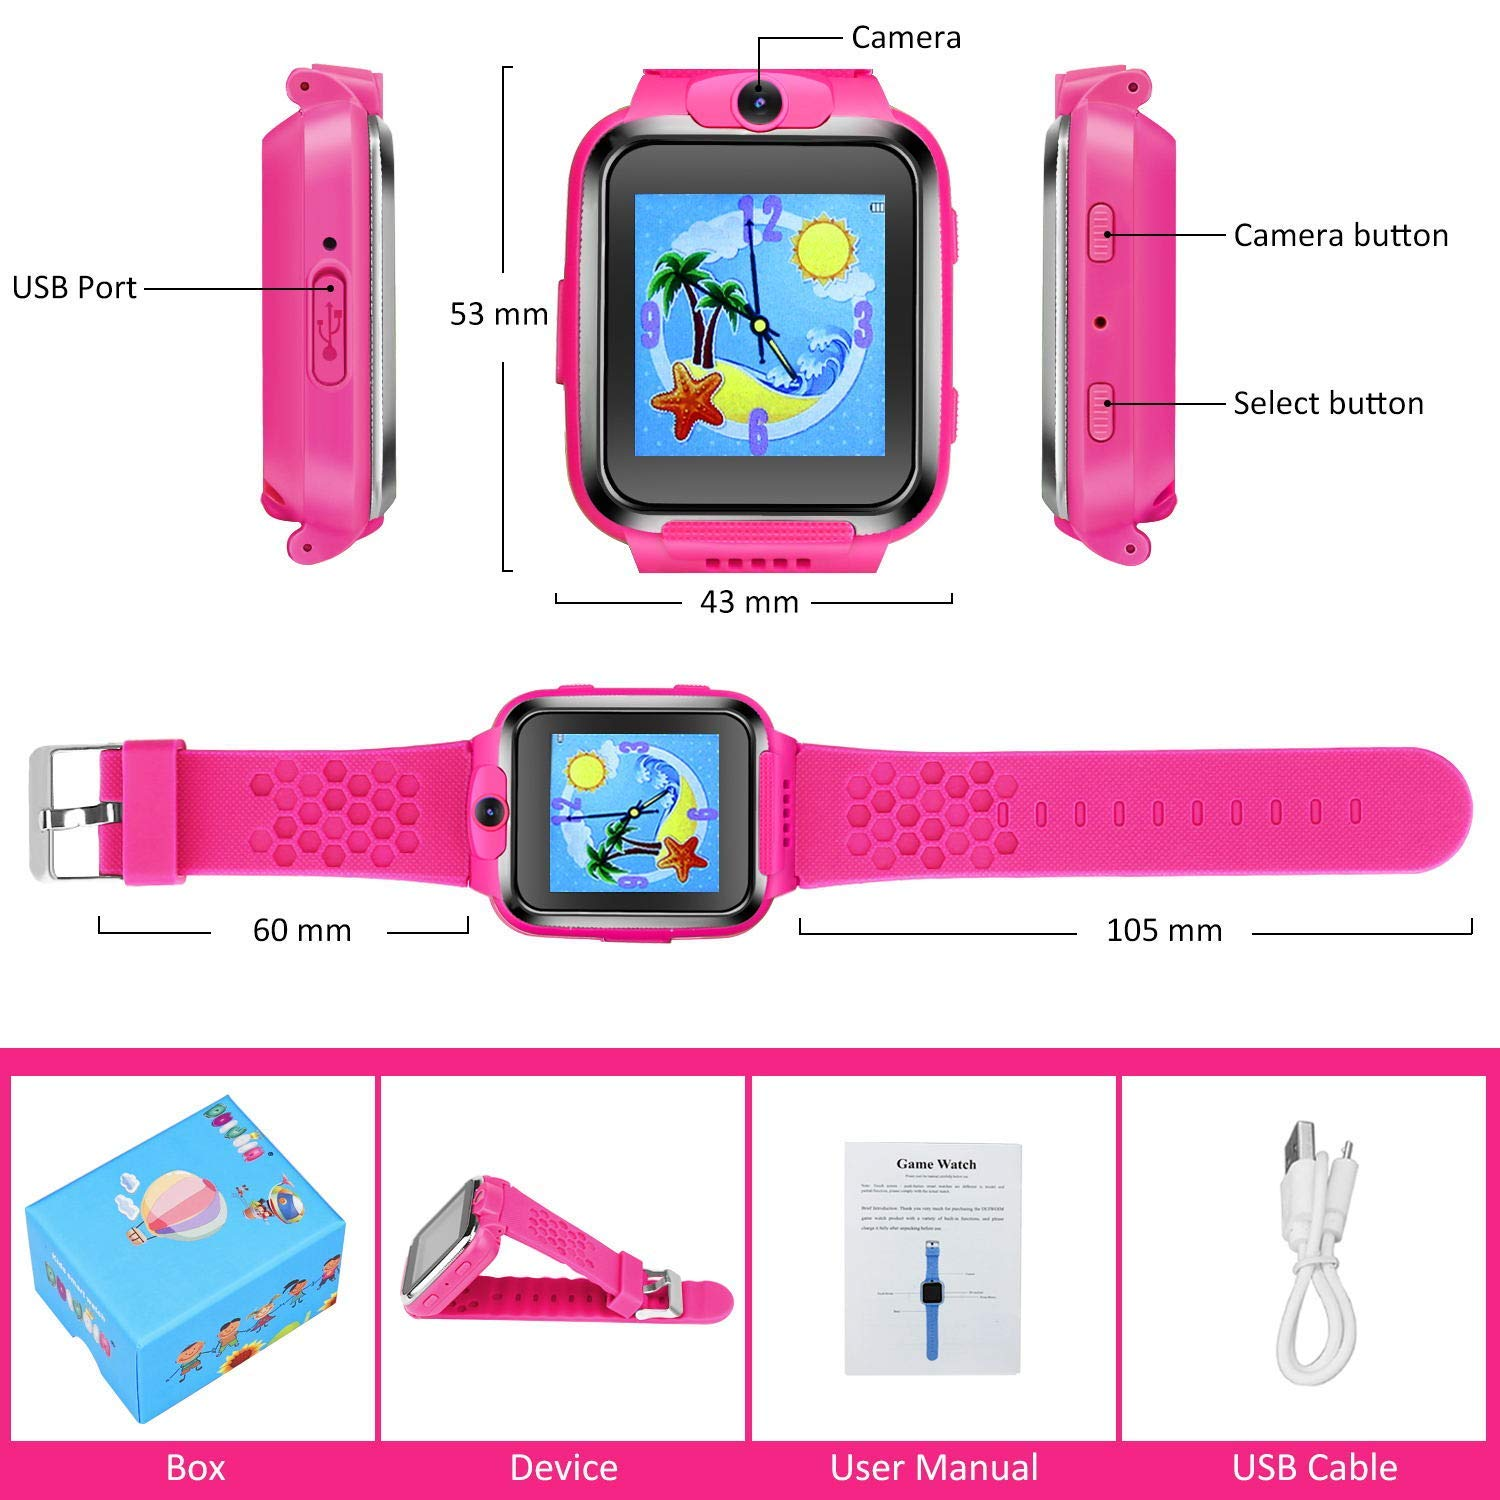 ZOPPRI Kids Game smartwatch Touch Screen Kinds of Games Kids Watch Theme Calendar Stopwatch Alarm Clock Photo Timer Multi-Function Watch Toy Gift for 3-12 Years Old boy Girl Birthday Gift (Pink) by ZOPPRI (Image #7)